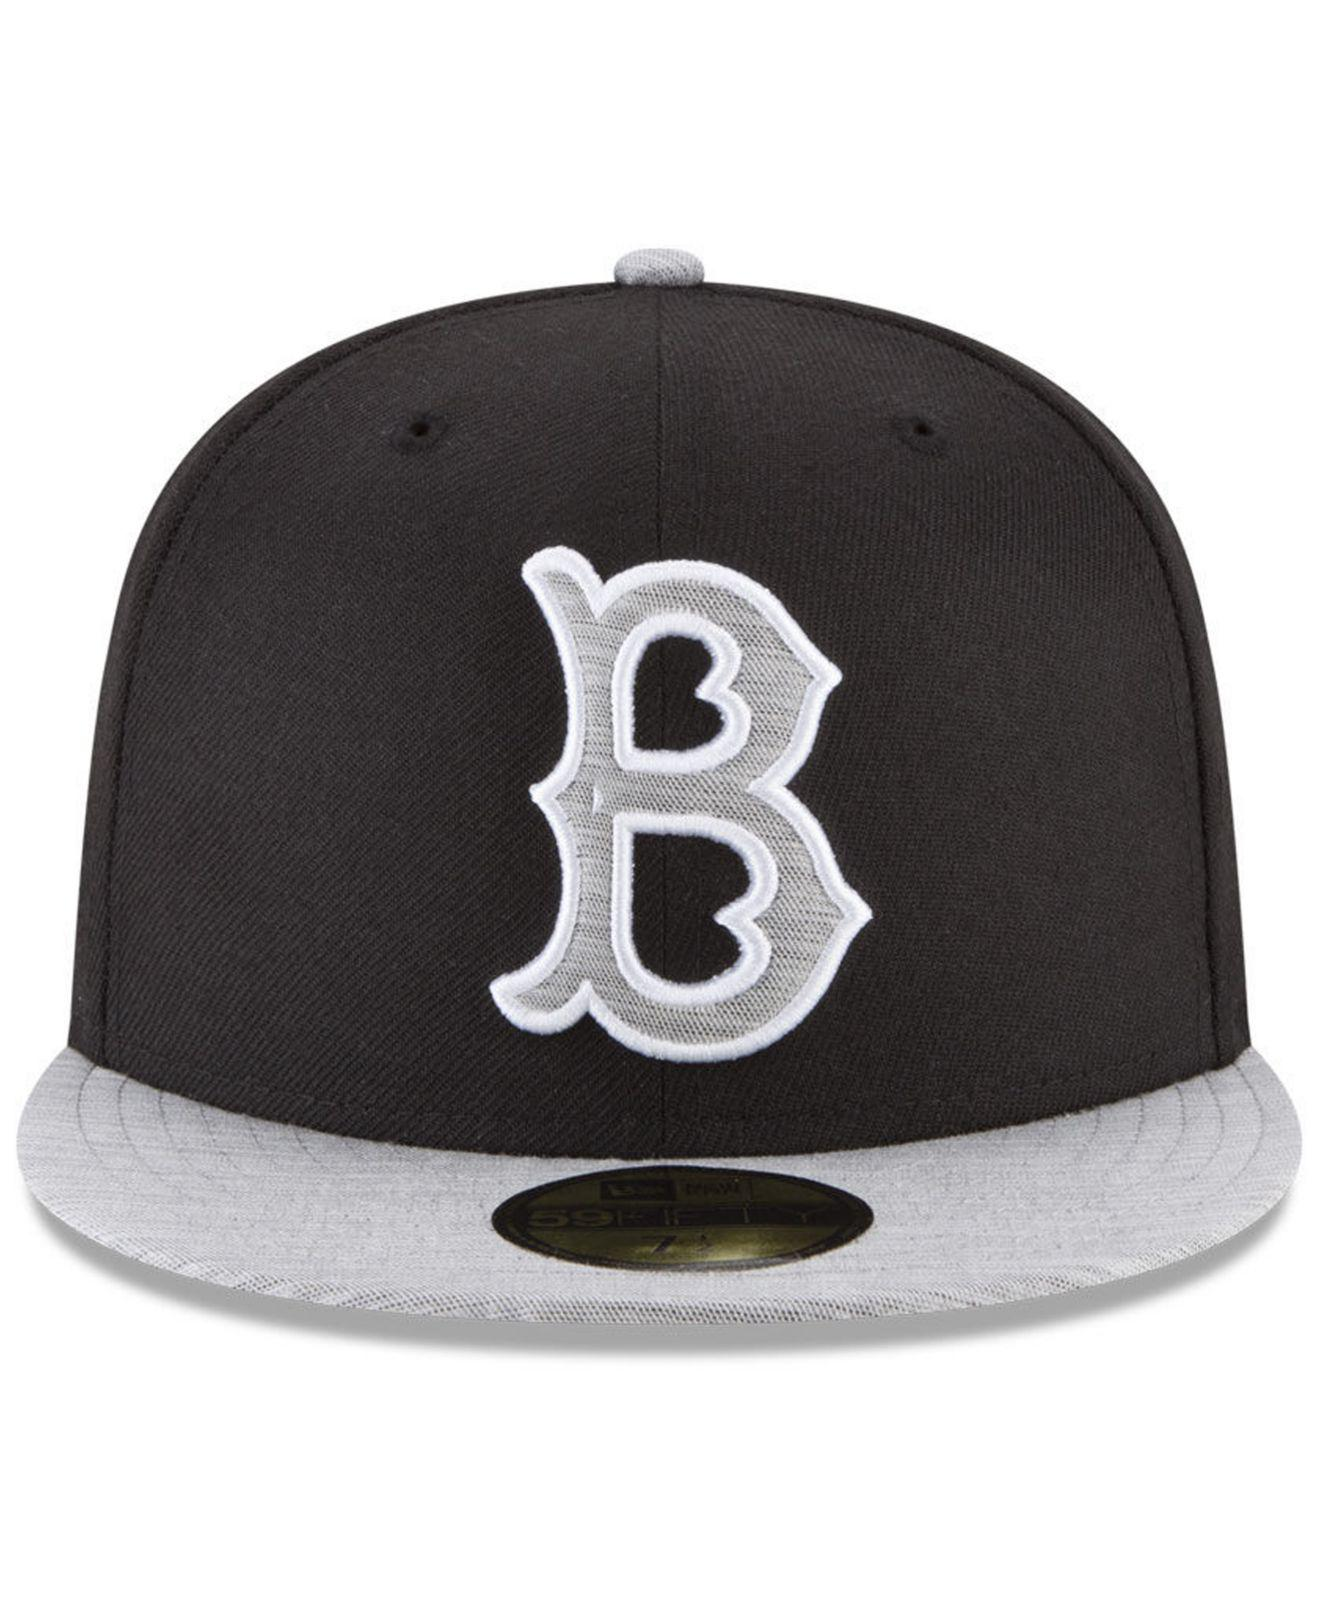 super popular 646fa a2494 wholesale lyst ktz brooklyn dodgers black heather coop 59fifty fitted cap  in black for men b4641